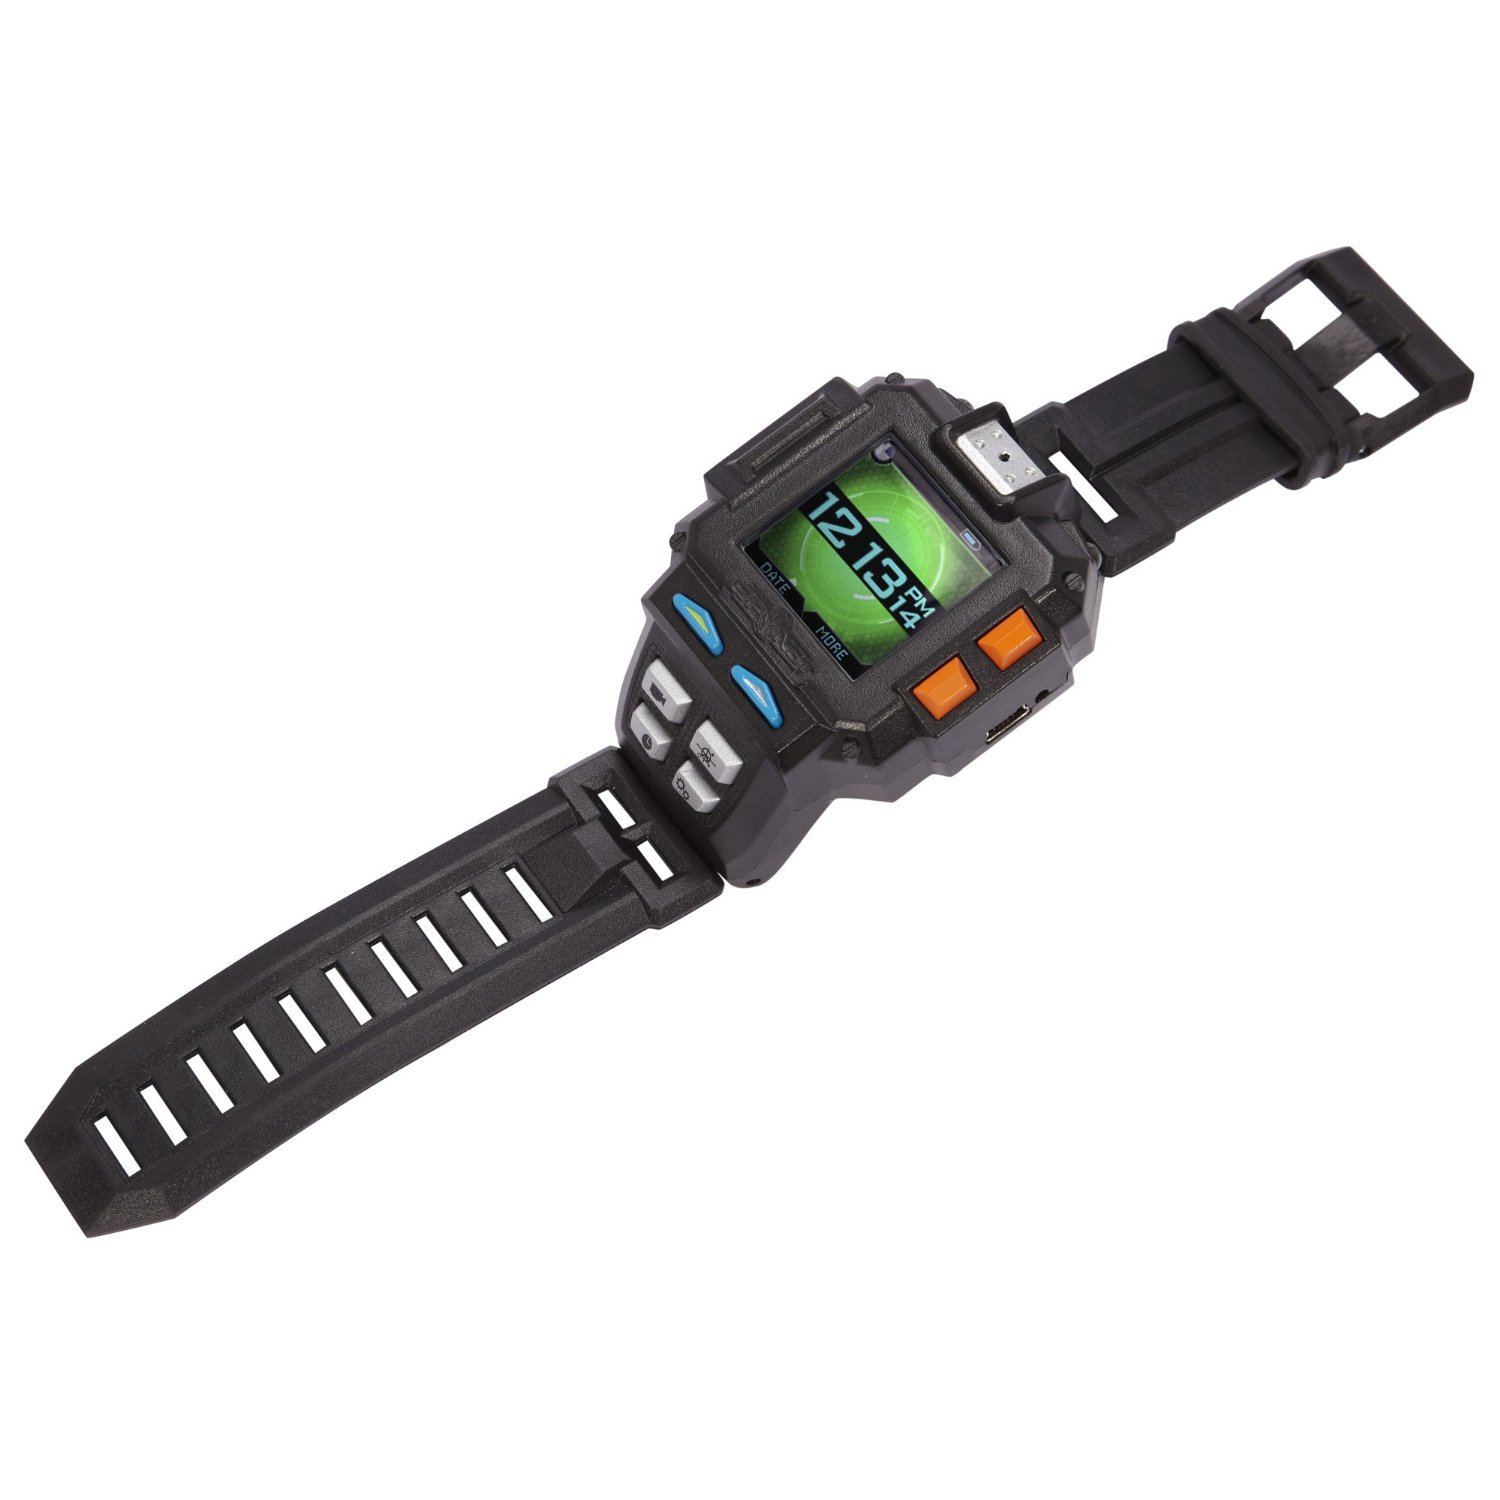 Spy Net Video Watch 2.0 with Night Vision